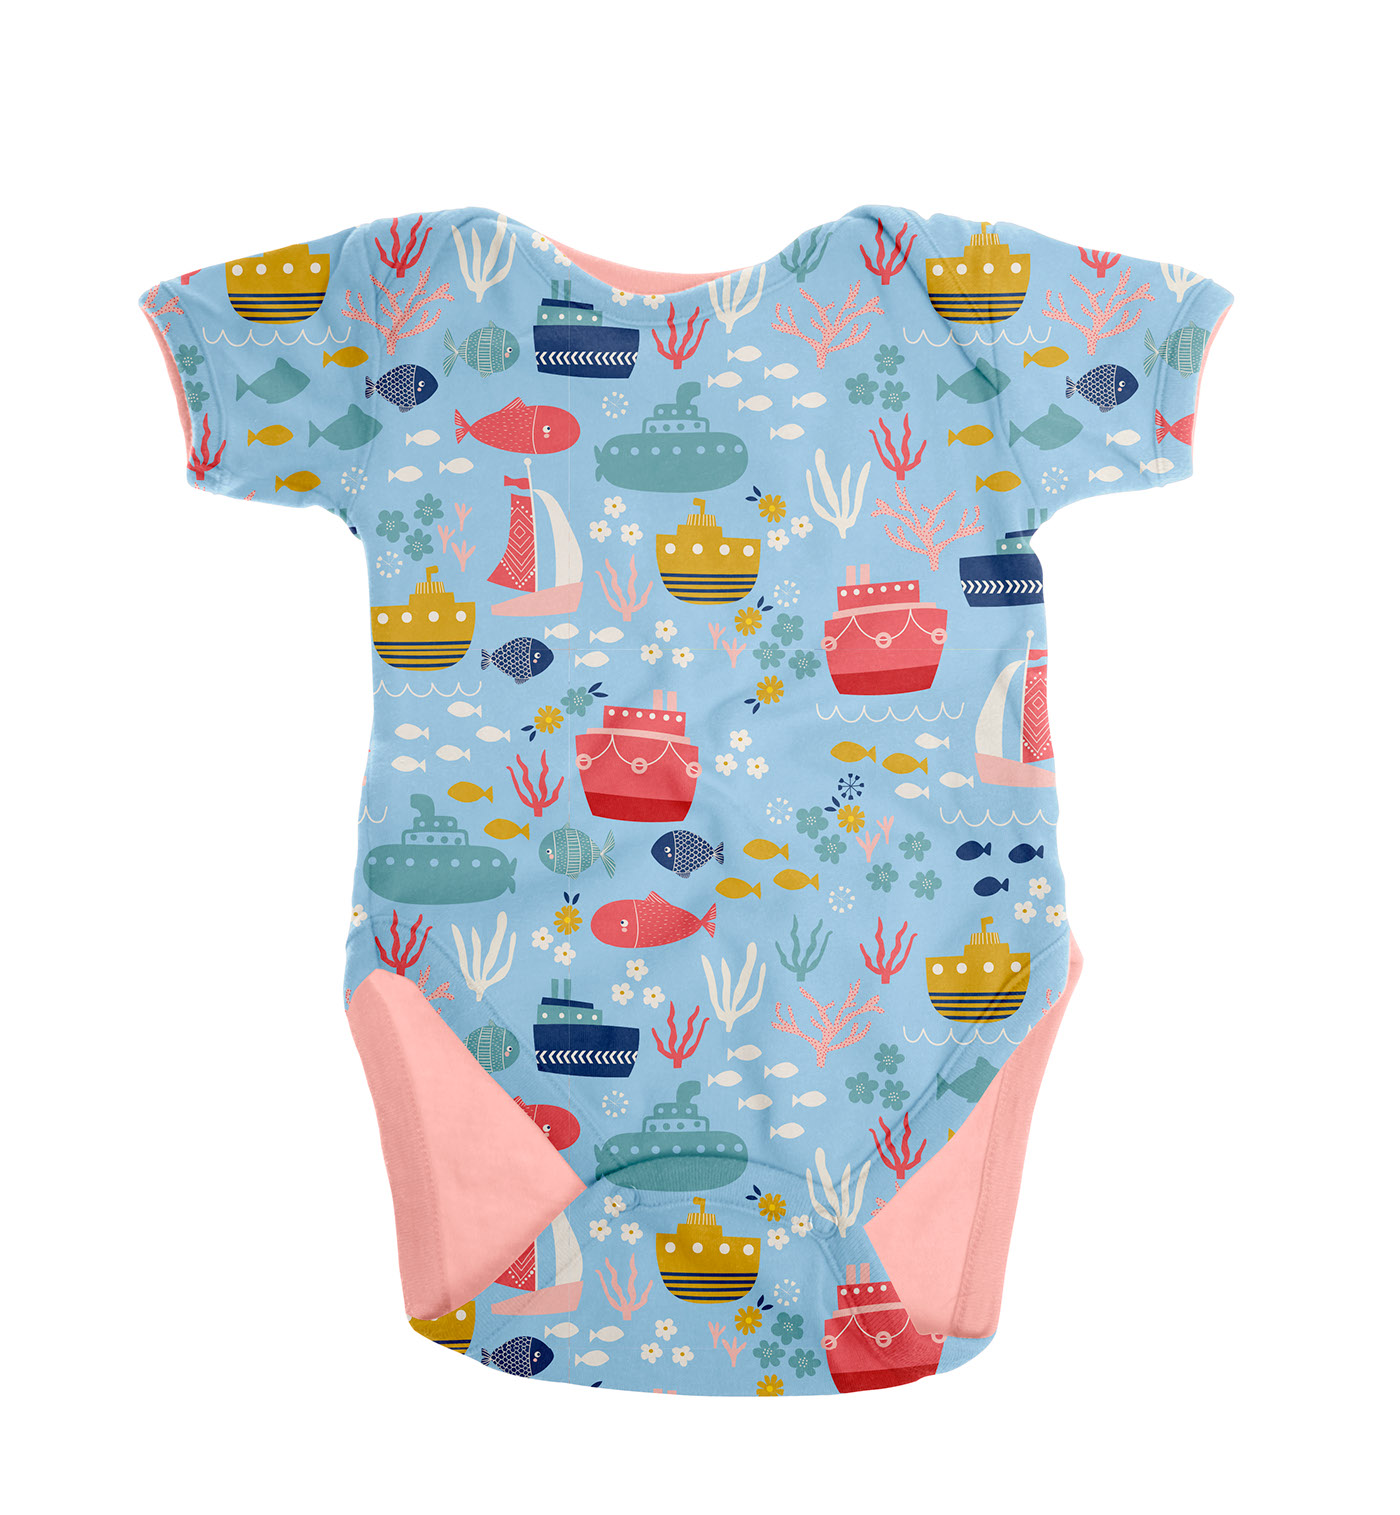 Under The Water Over The Water Baby Wear Print Design on Behance